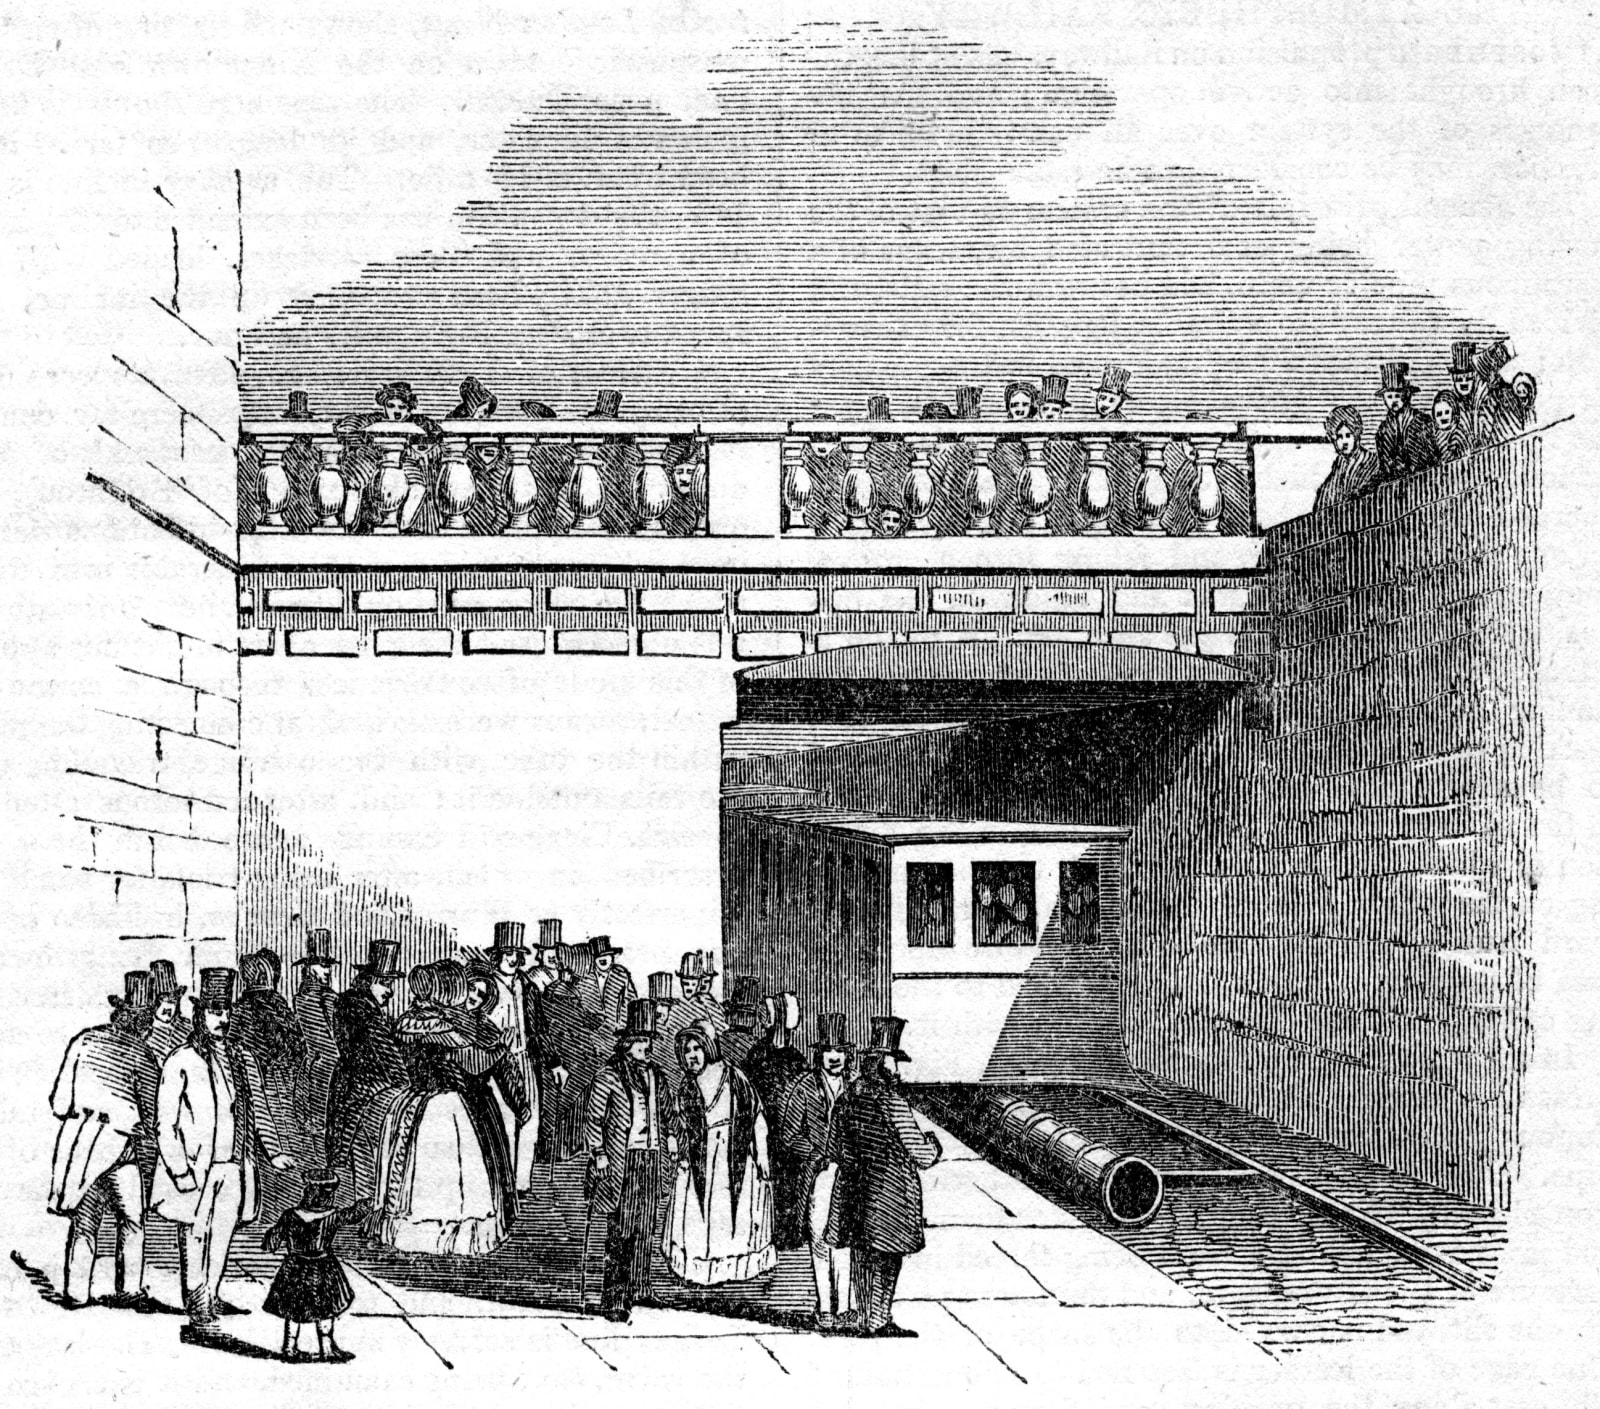 Kingstown and Dalkey Atmospheric Railway, near Dublin, 1845.